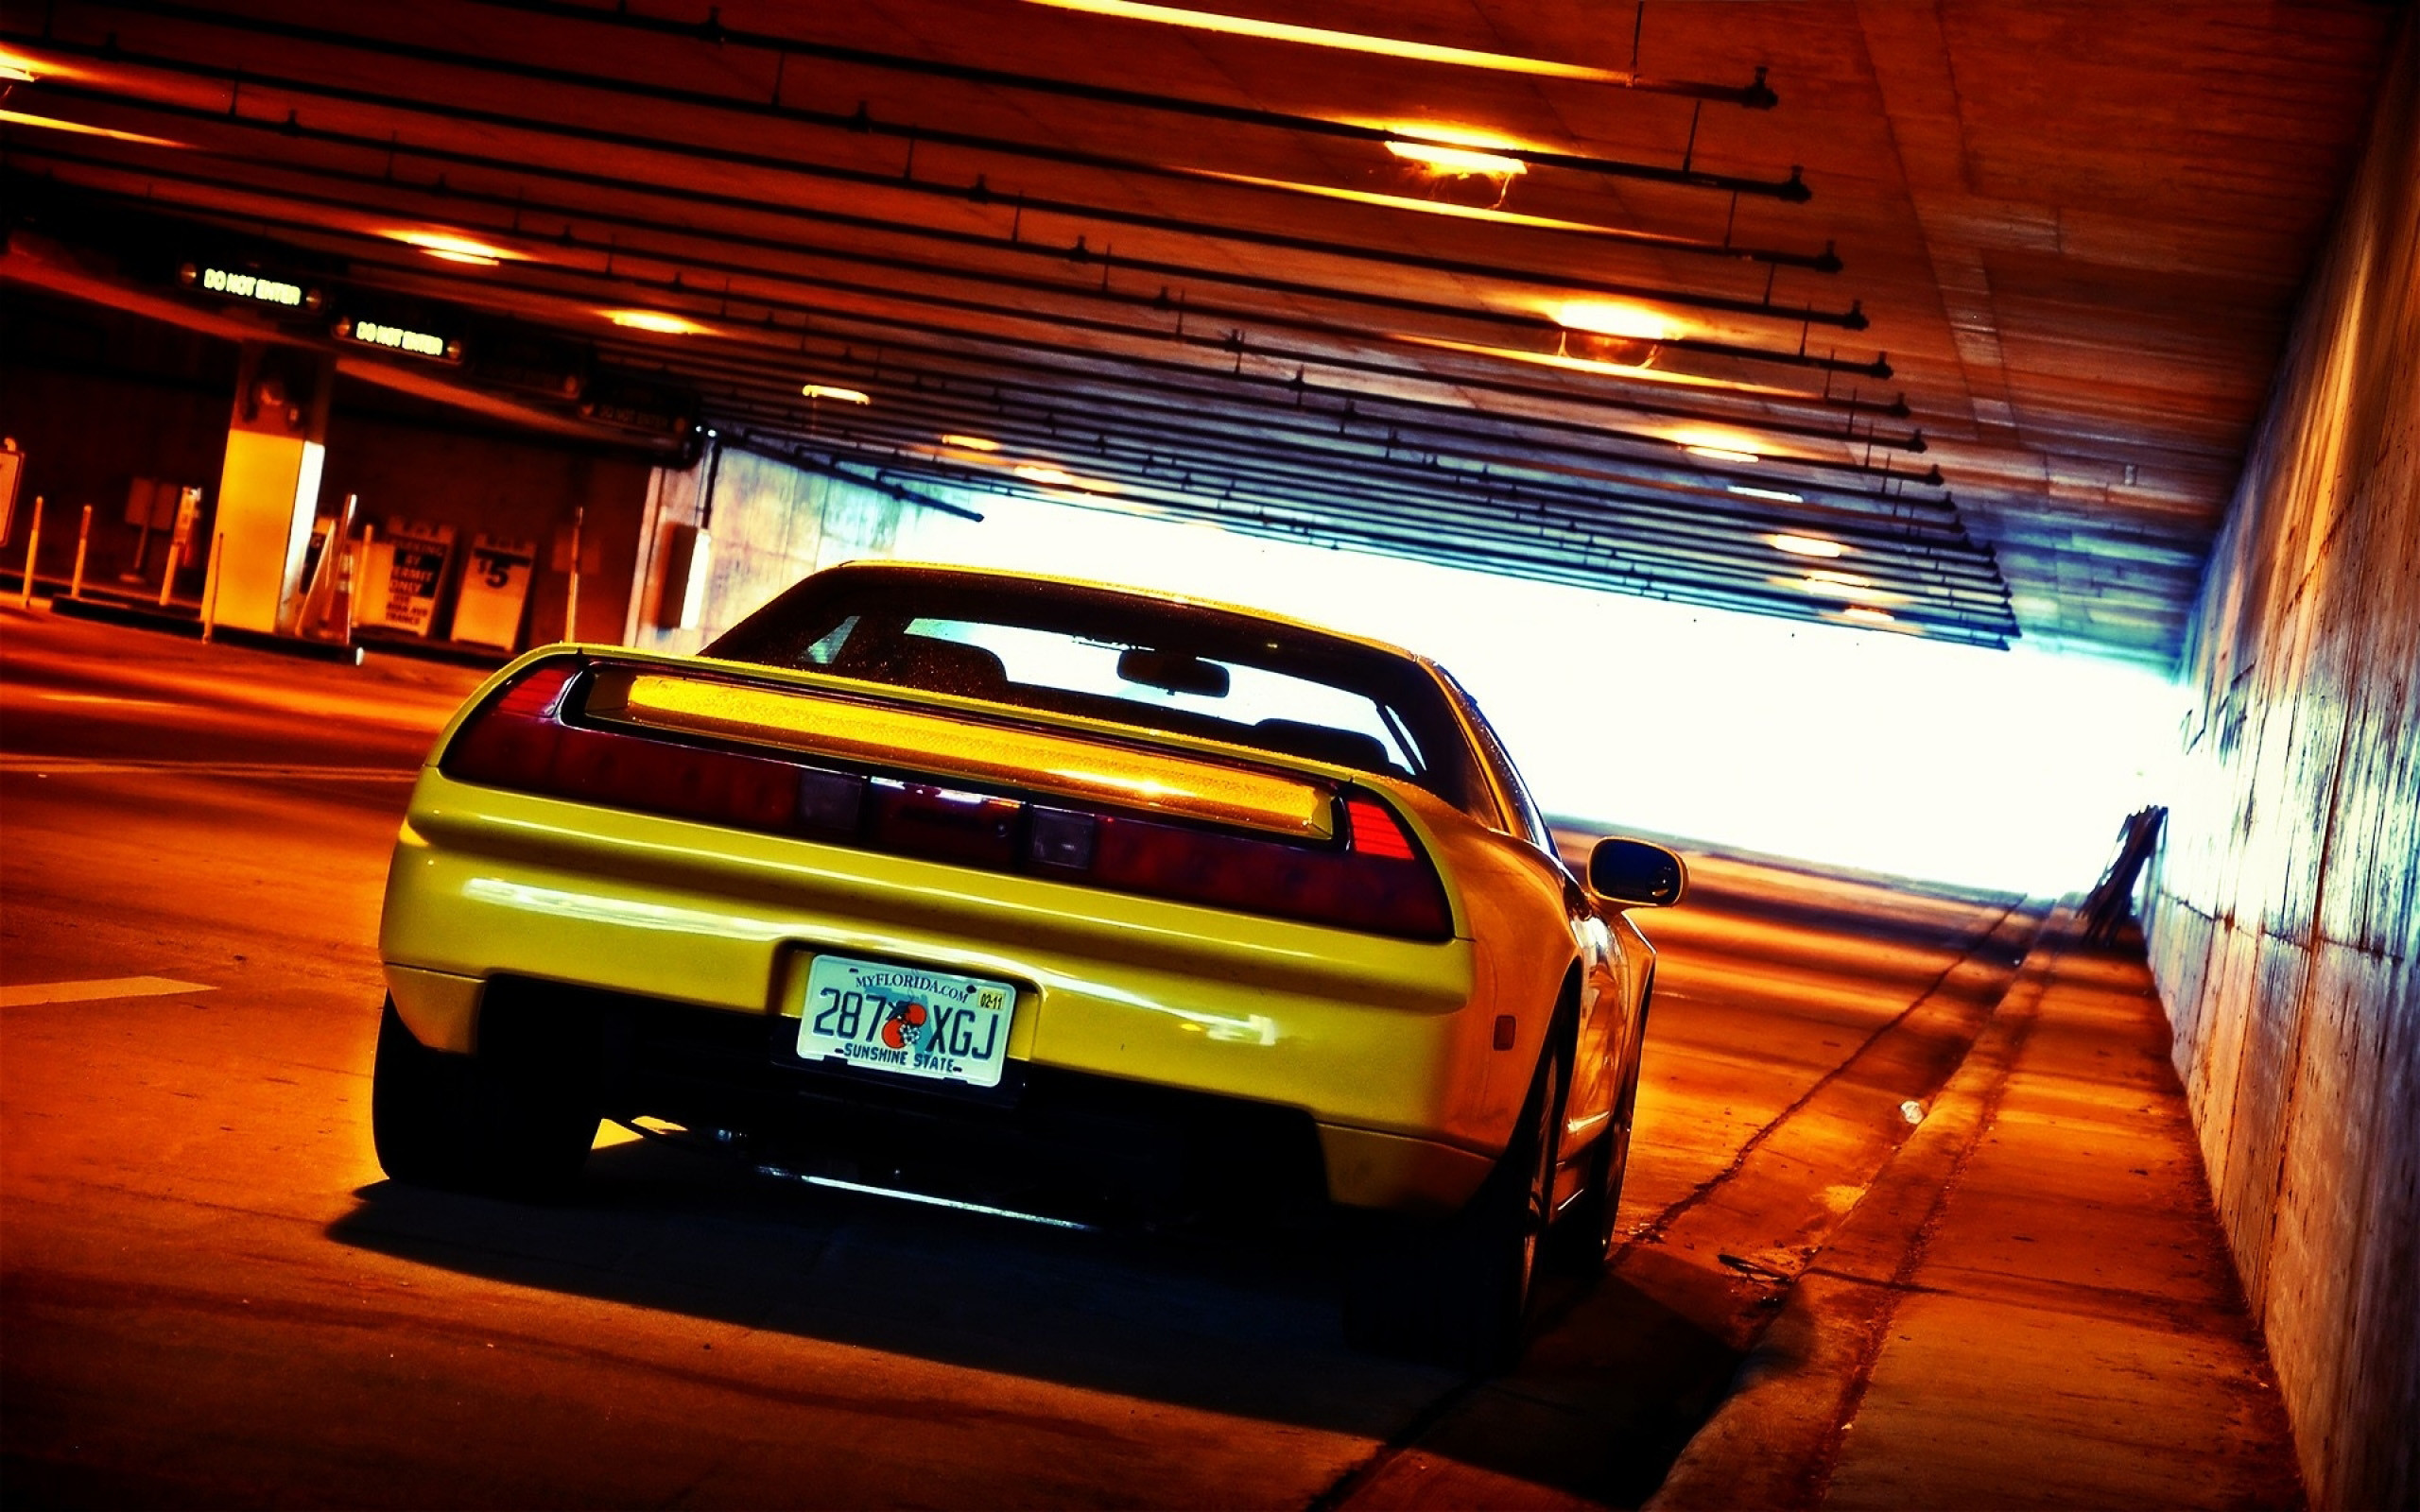 Josh briggs & christopher lampton it seems like it was only a few years ago when cell phones. Hd Wallpaper Of Yellow Cars Honda Nsx Tunnel Jdm Desktop Wallpaper Yellow Cars Honda Nsx